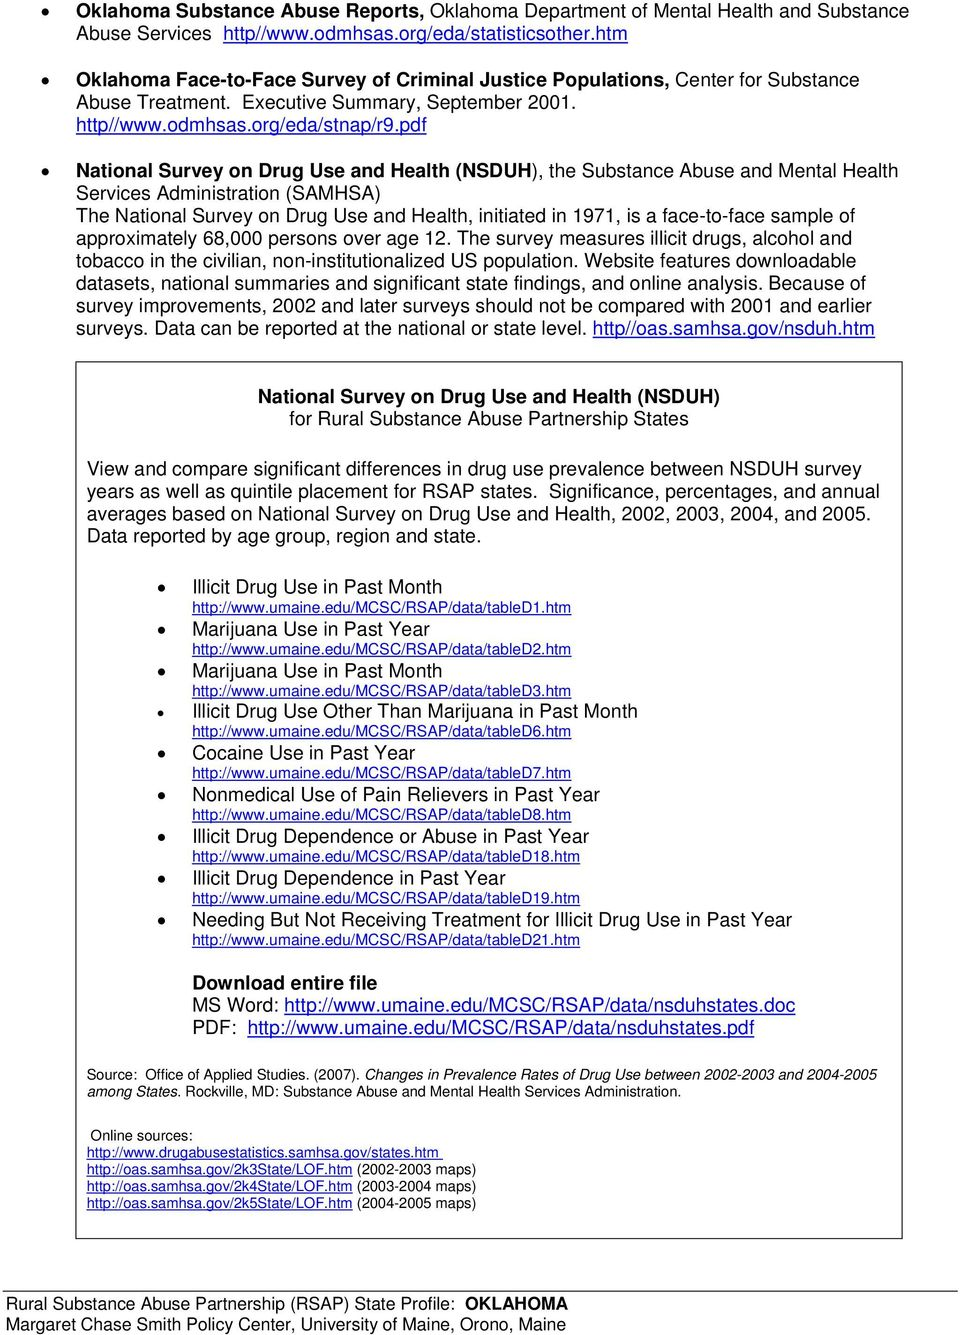 pdf National Survey on Drug Use and Health (NSDUH), the Substance Abuse and Mental Health Services Administration (SAMHSA) The National Survey on Drug Use and Health, initiated in 1971, is a